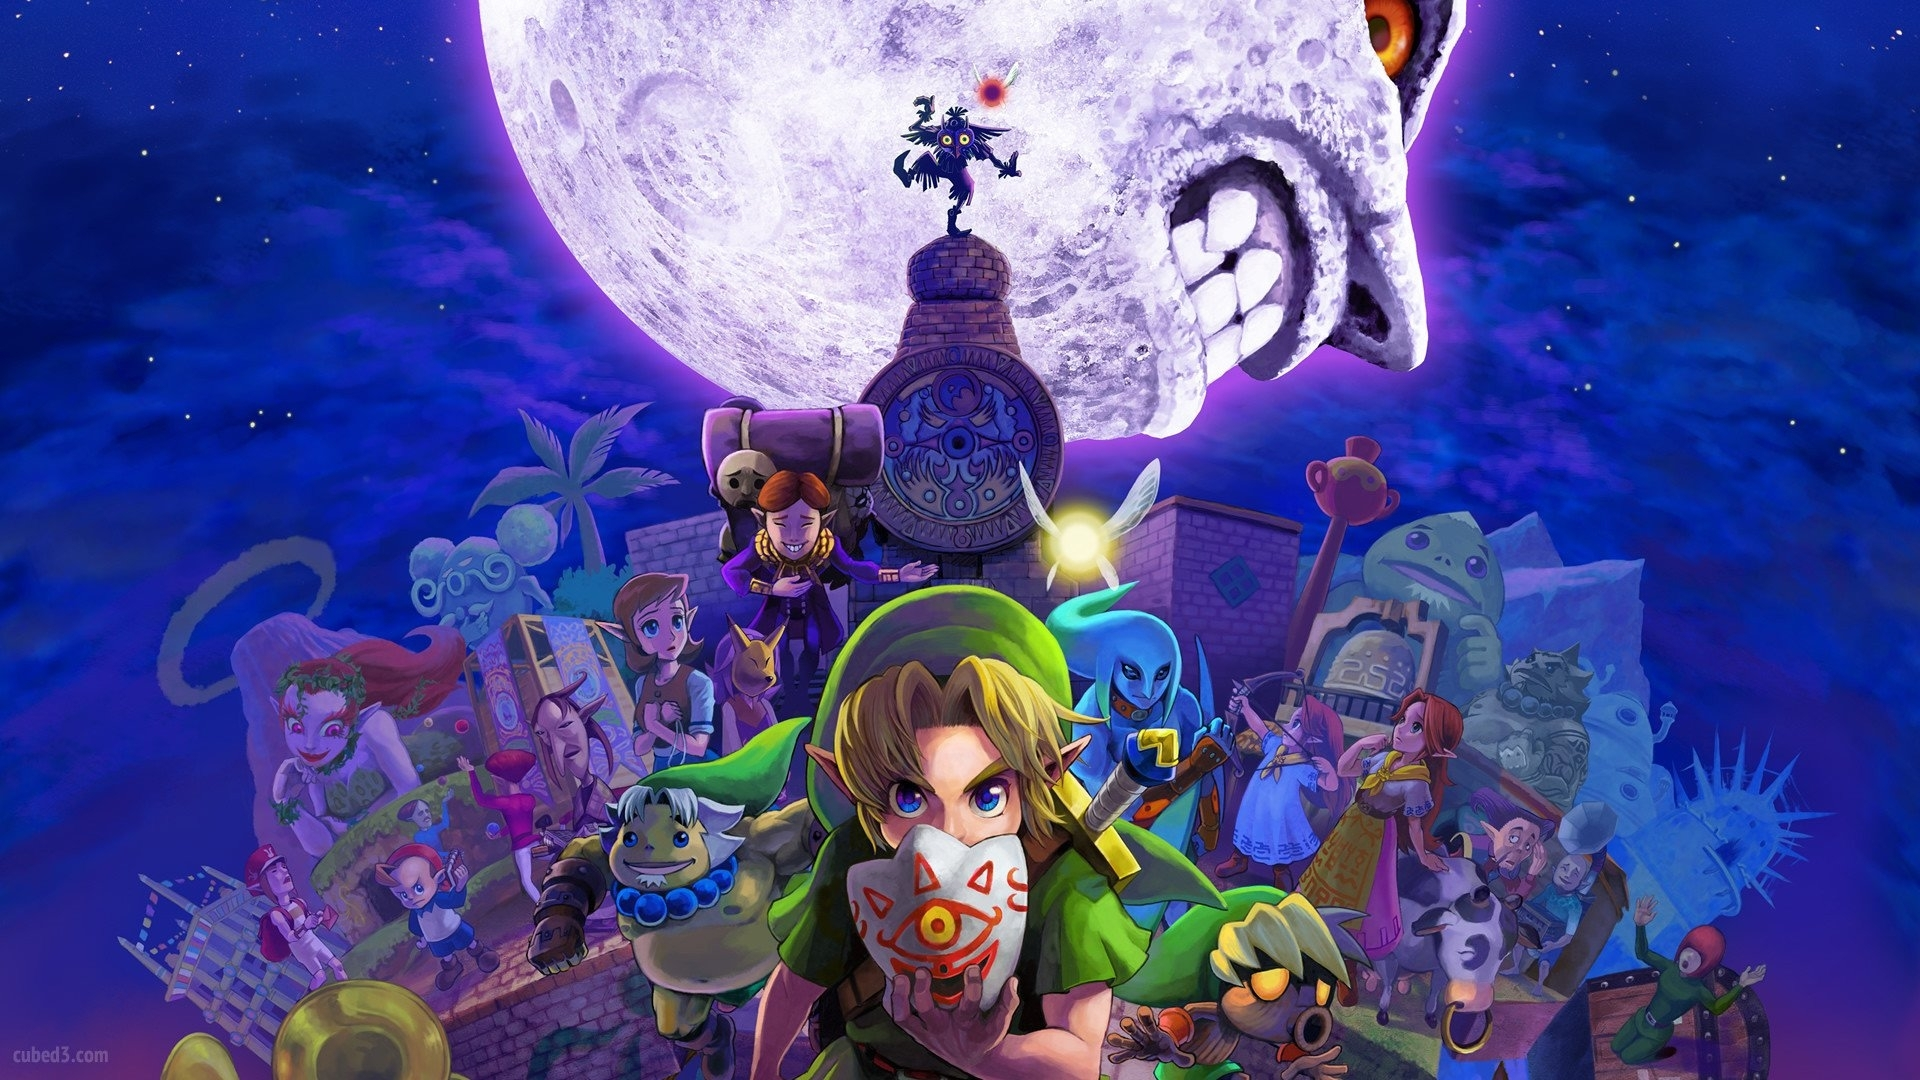 the legend of zelda majora's mask 3d wallpaper full hd fond d'écran